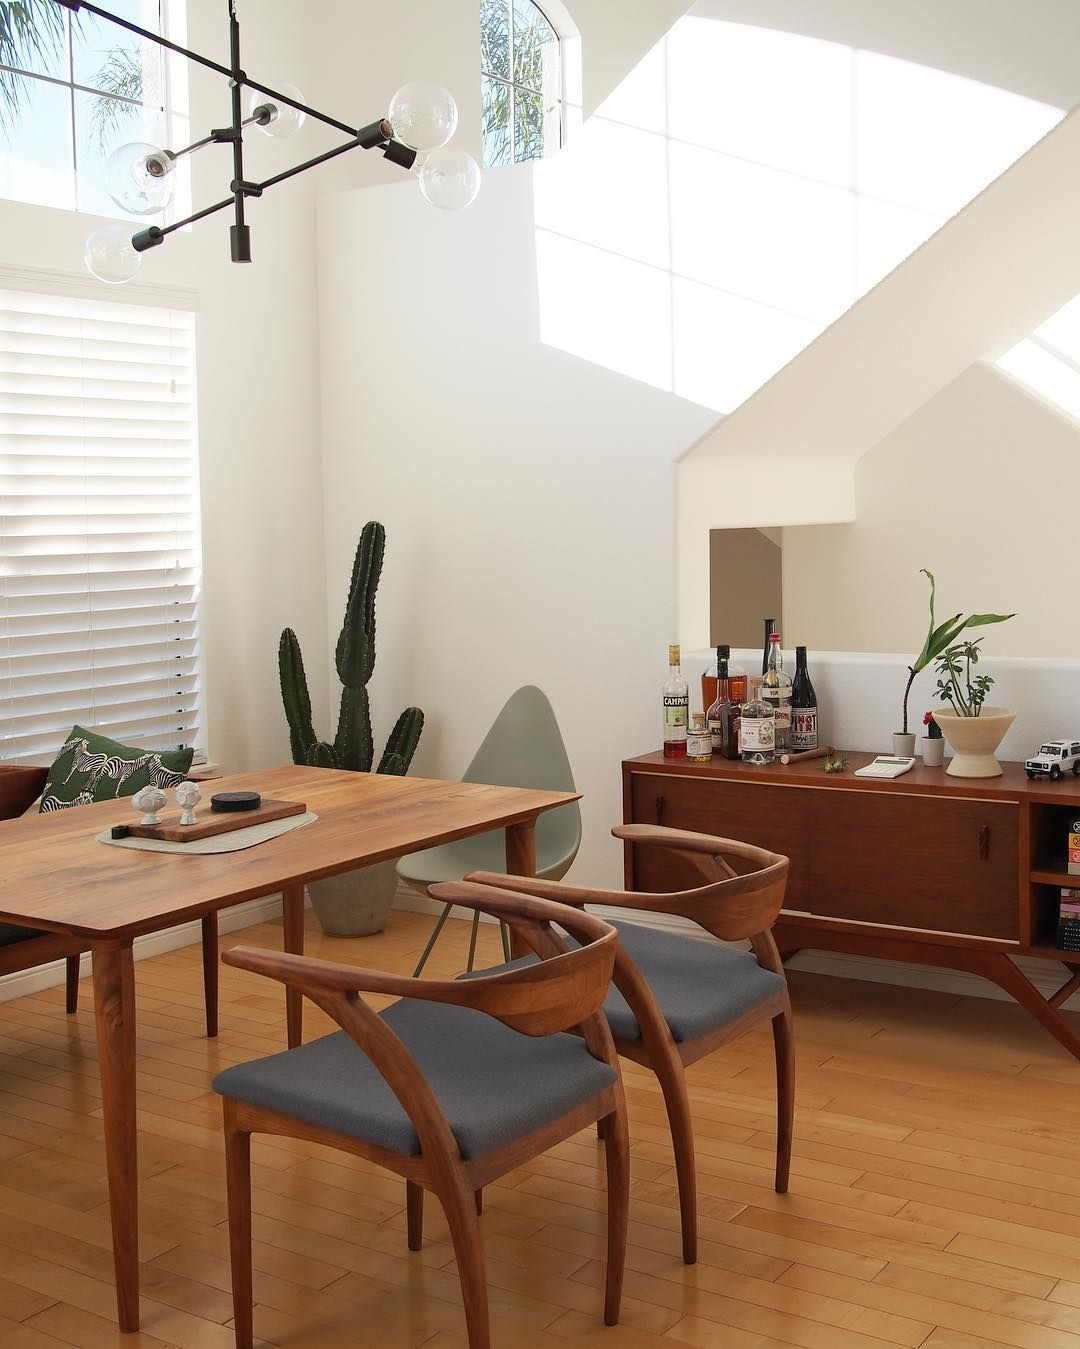 Pleasing Mid Century Dining Room With Wooden Table Chairs And Ocoug Best Dining Table And Chair Ideas Images Ocougorg